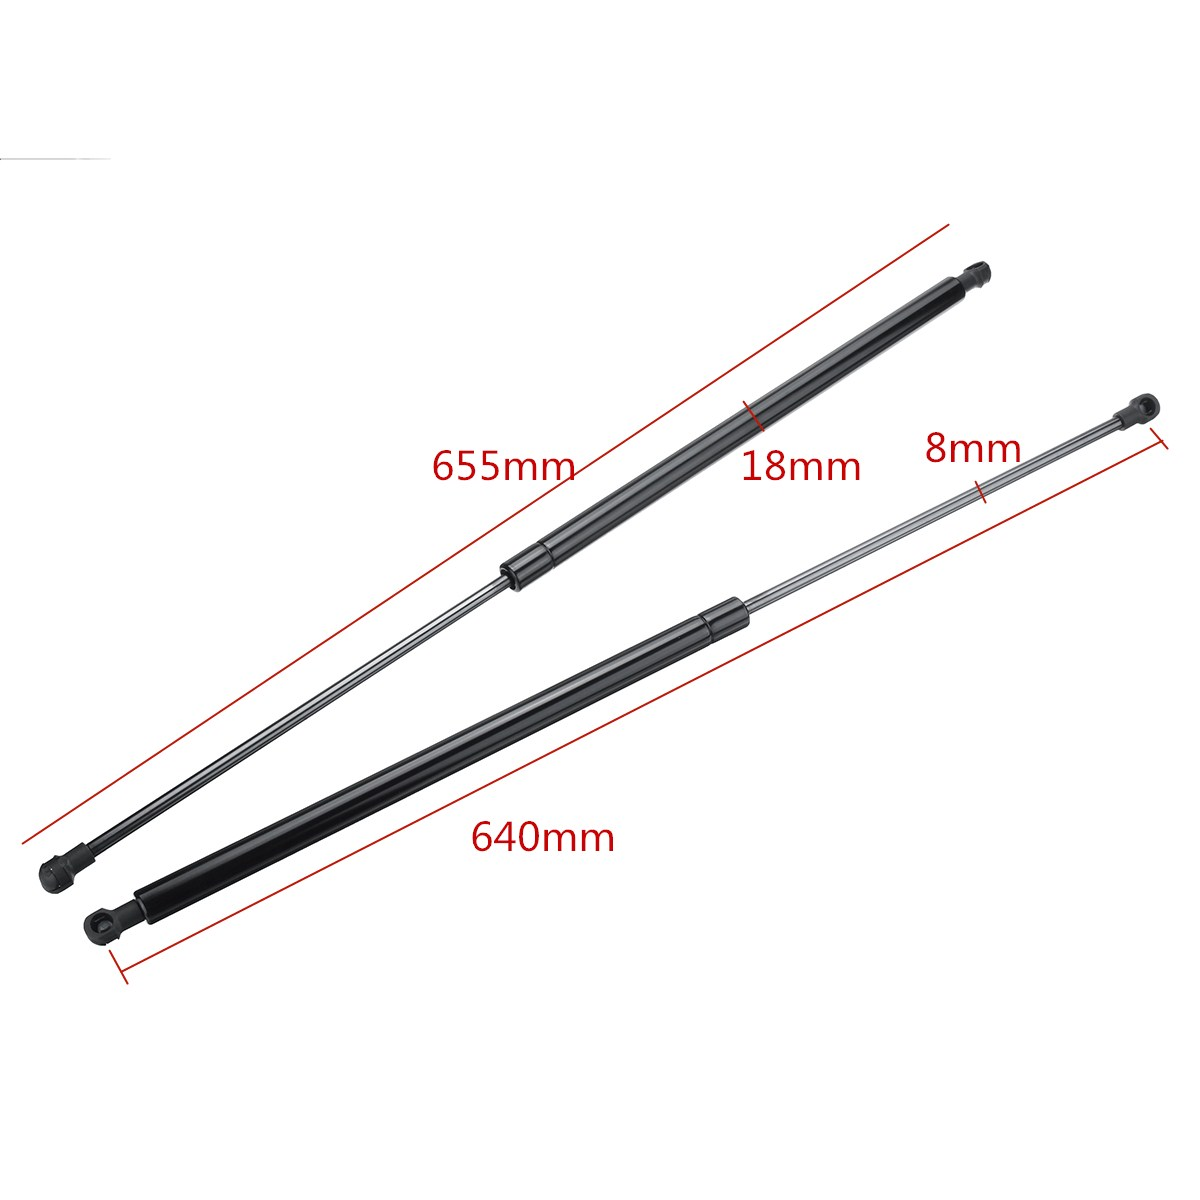 2x Tailgate Boot Gas Struts Support Lifter For Honda Civic